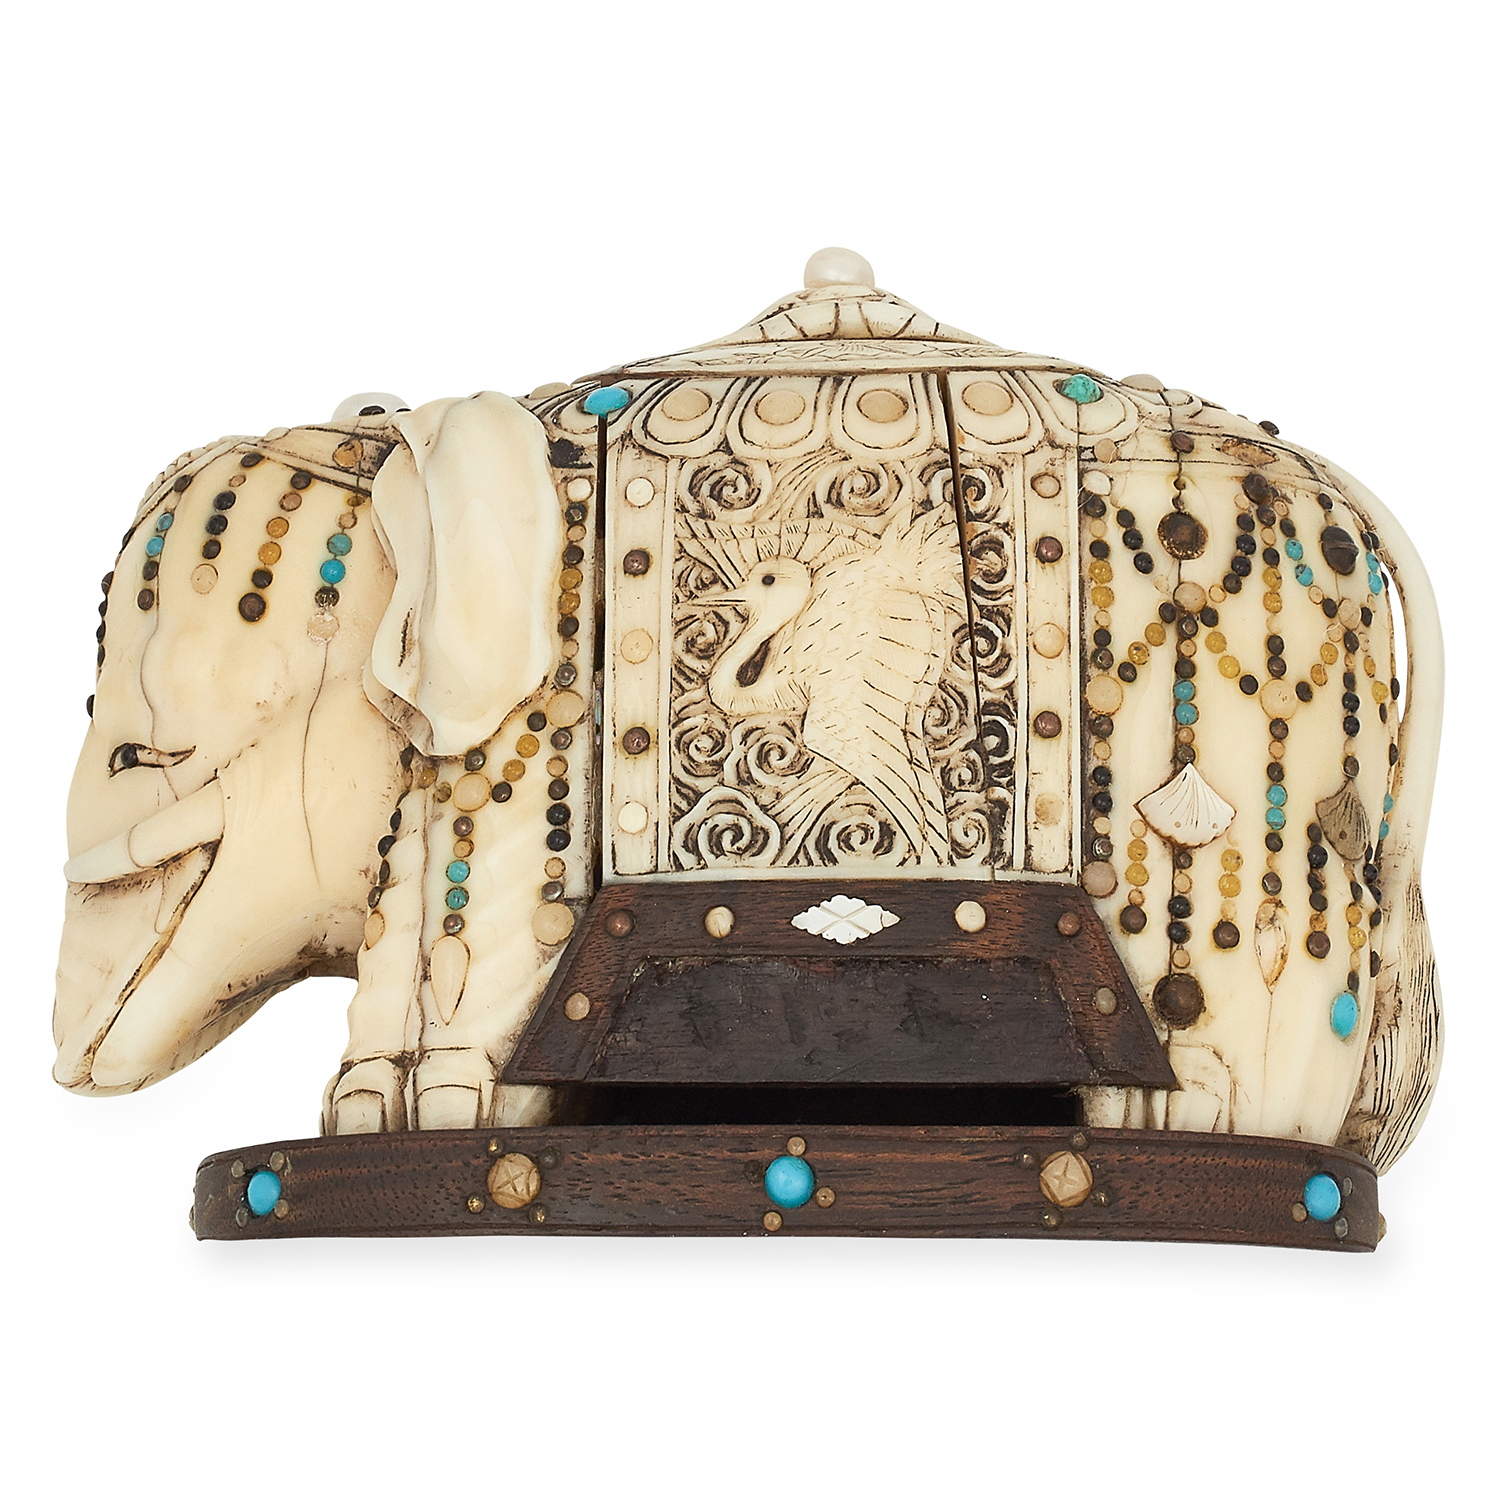 Los 30A - ANTIQUE MUGHAL IVORY GEMSET ELEPHANT STATUE with decorated detailing, 11cm, 334.7g.